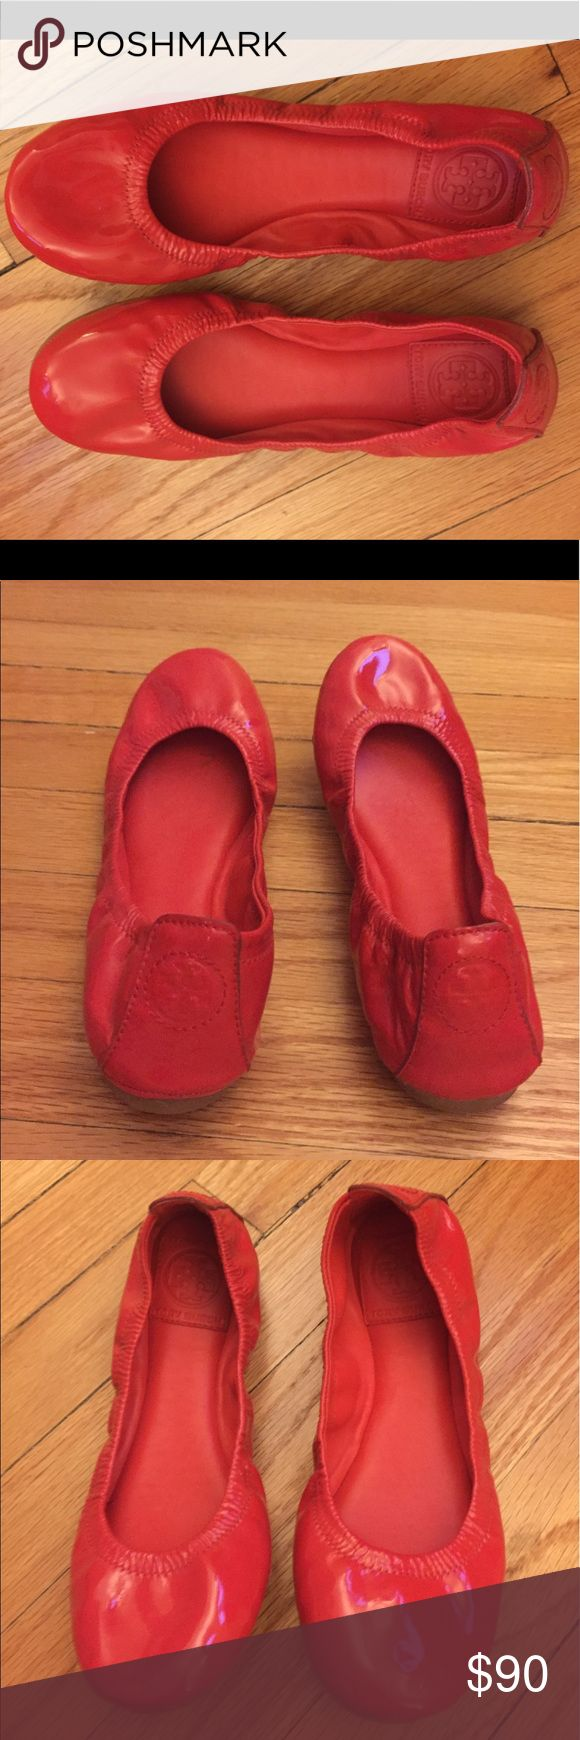 Tory Burch Eddie Red Ballet Flats 6.5 ToryBurch size 6.5 Red Eddie Ballet Flats worn once and in excellent condition ! Tory Burch Shoes Flats & Loafers